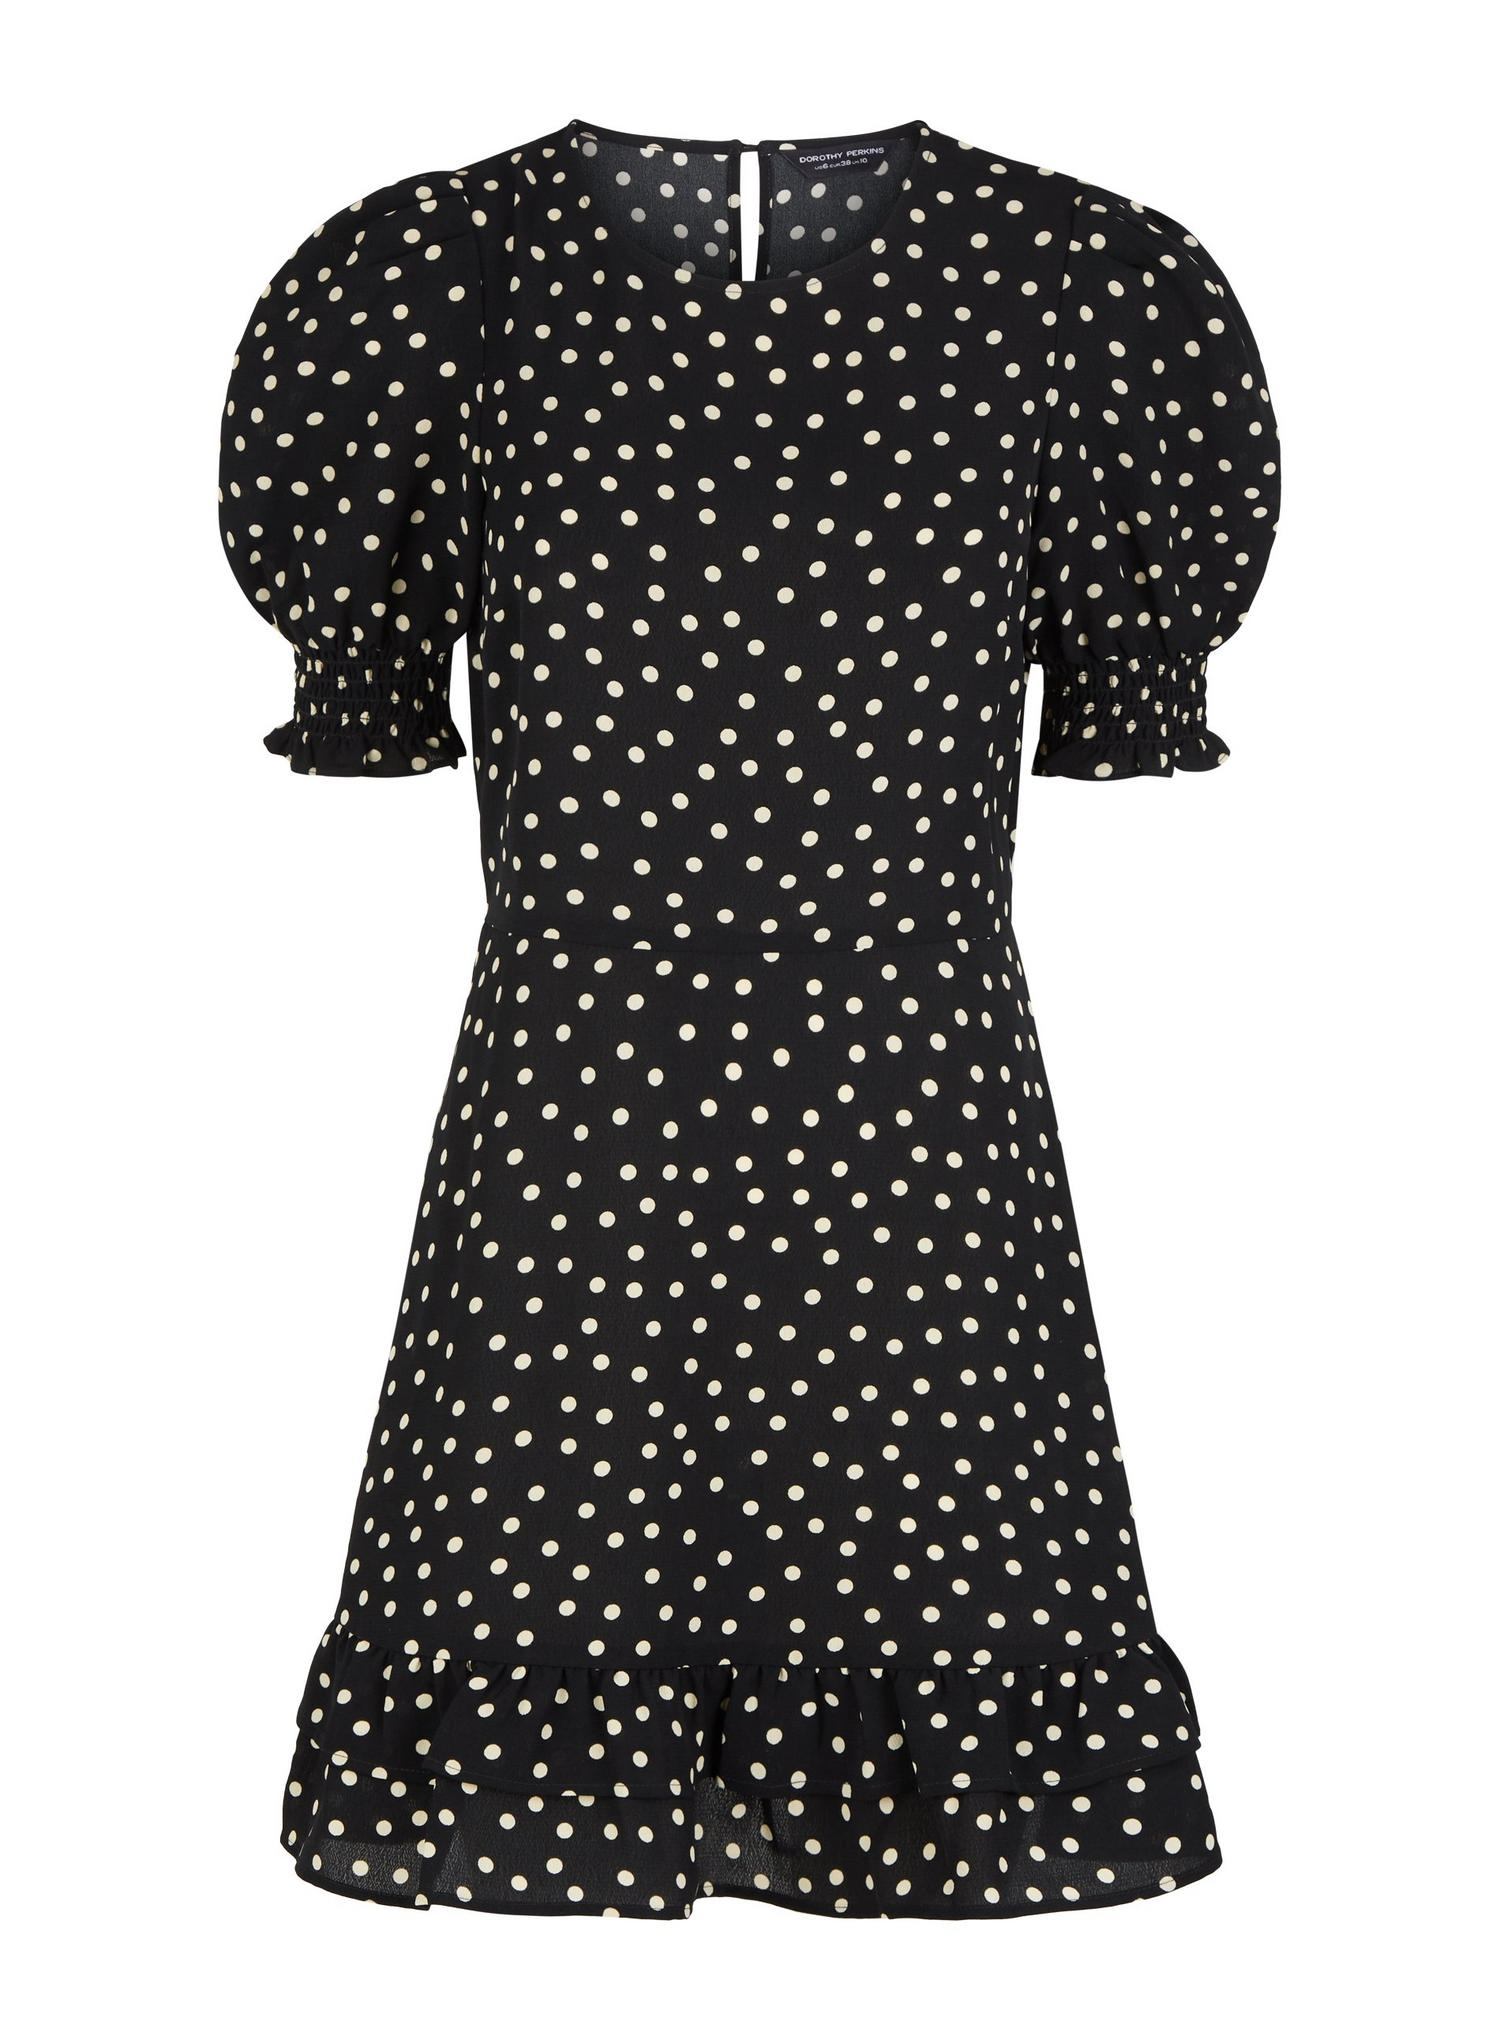 105 Black Spot Print Frill Hem Mini Dress image number 2